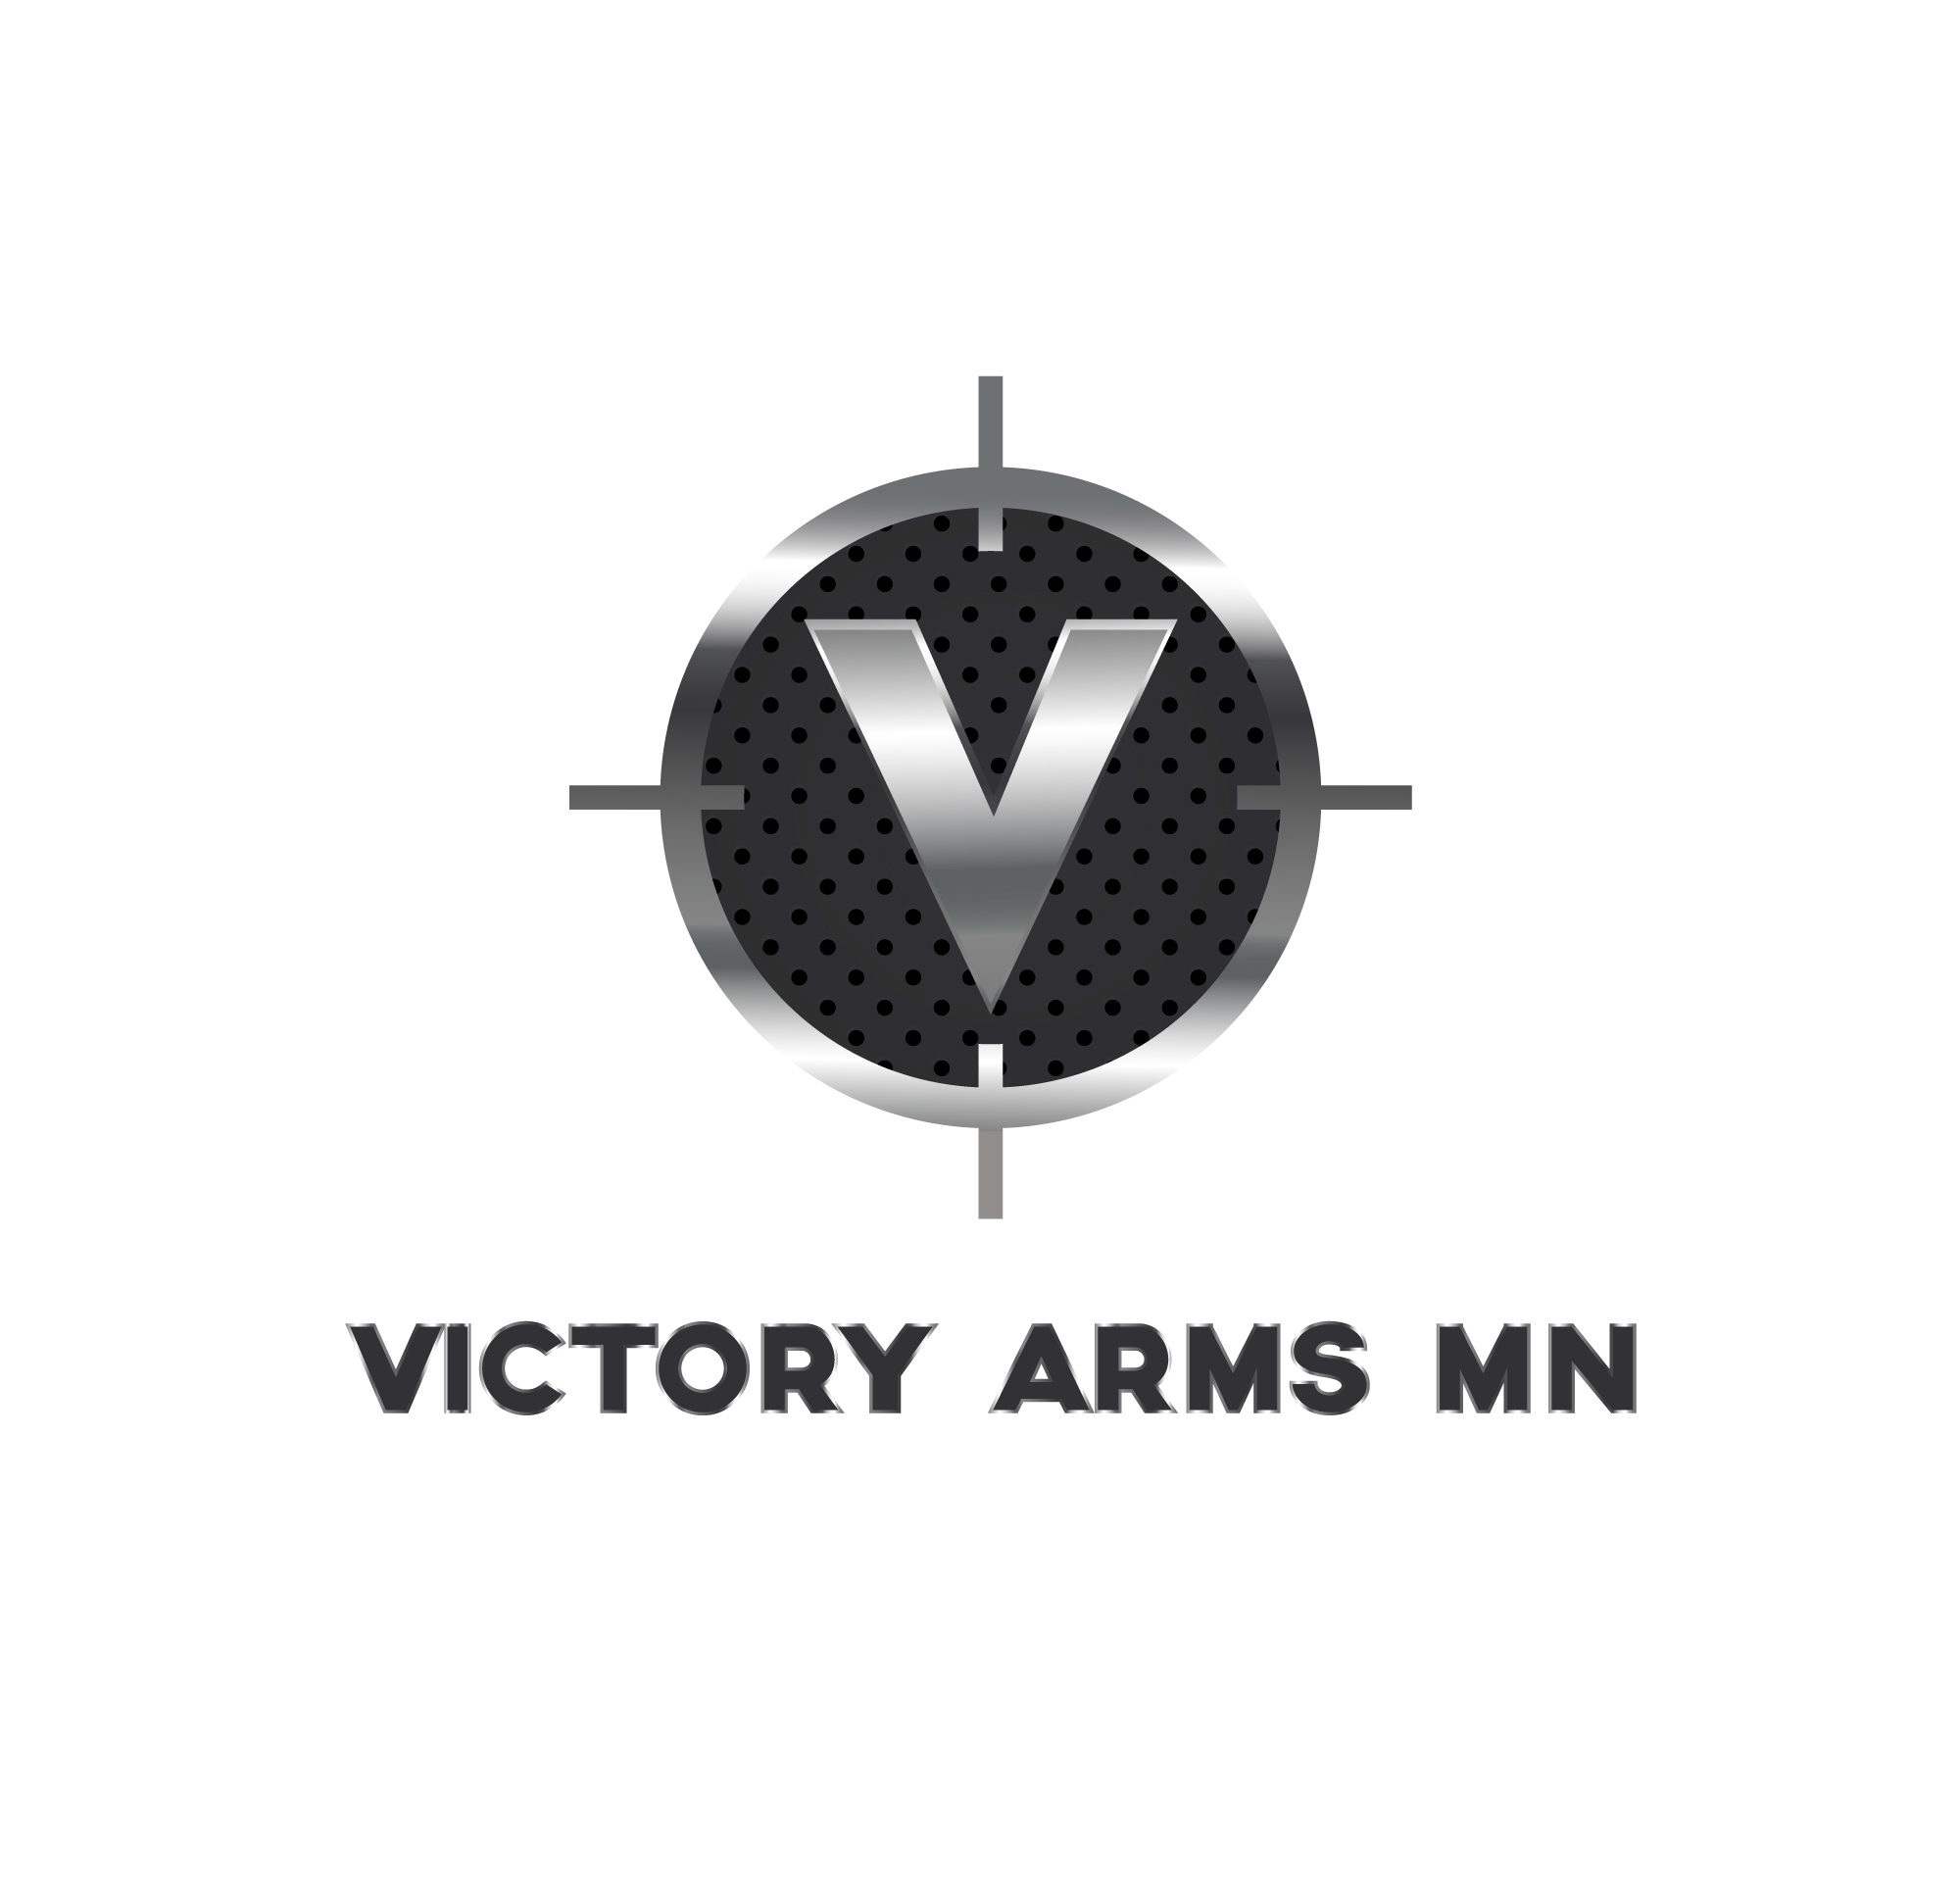 Victory Arms MN